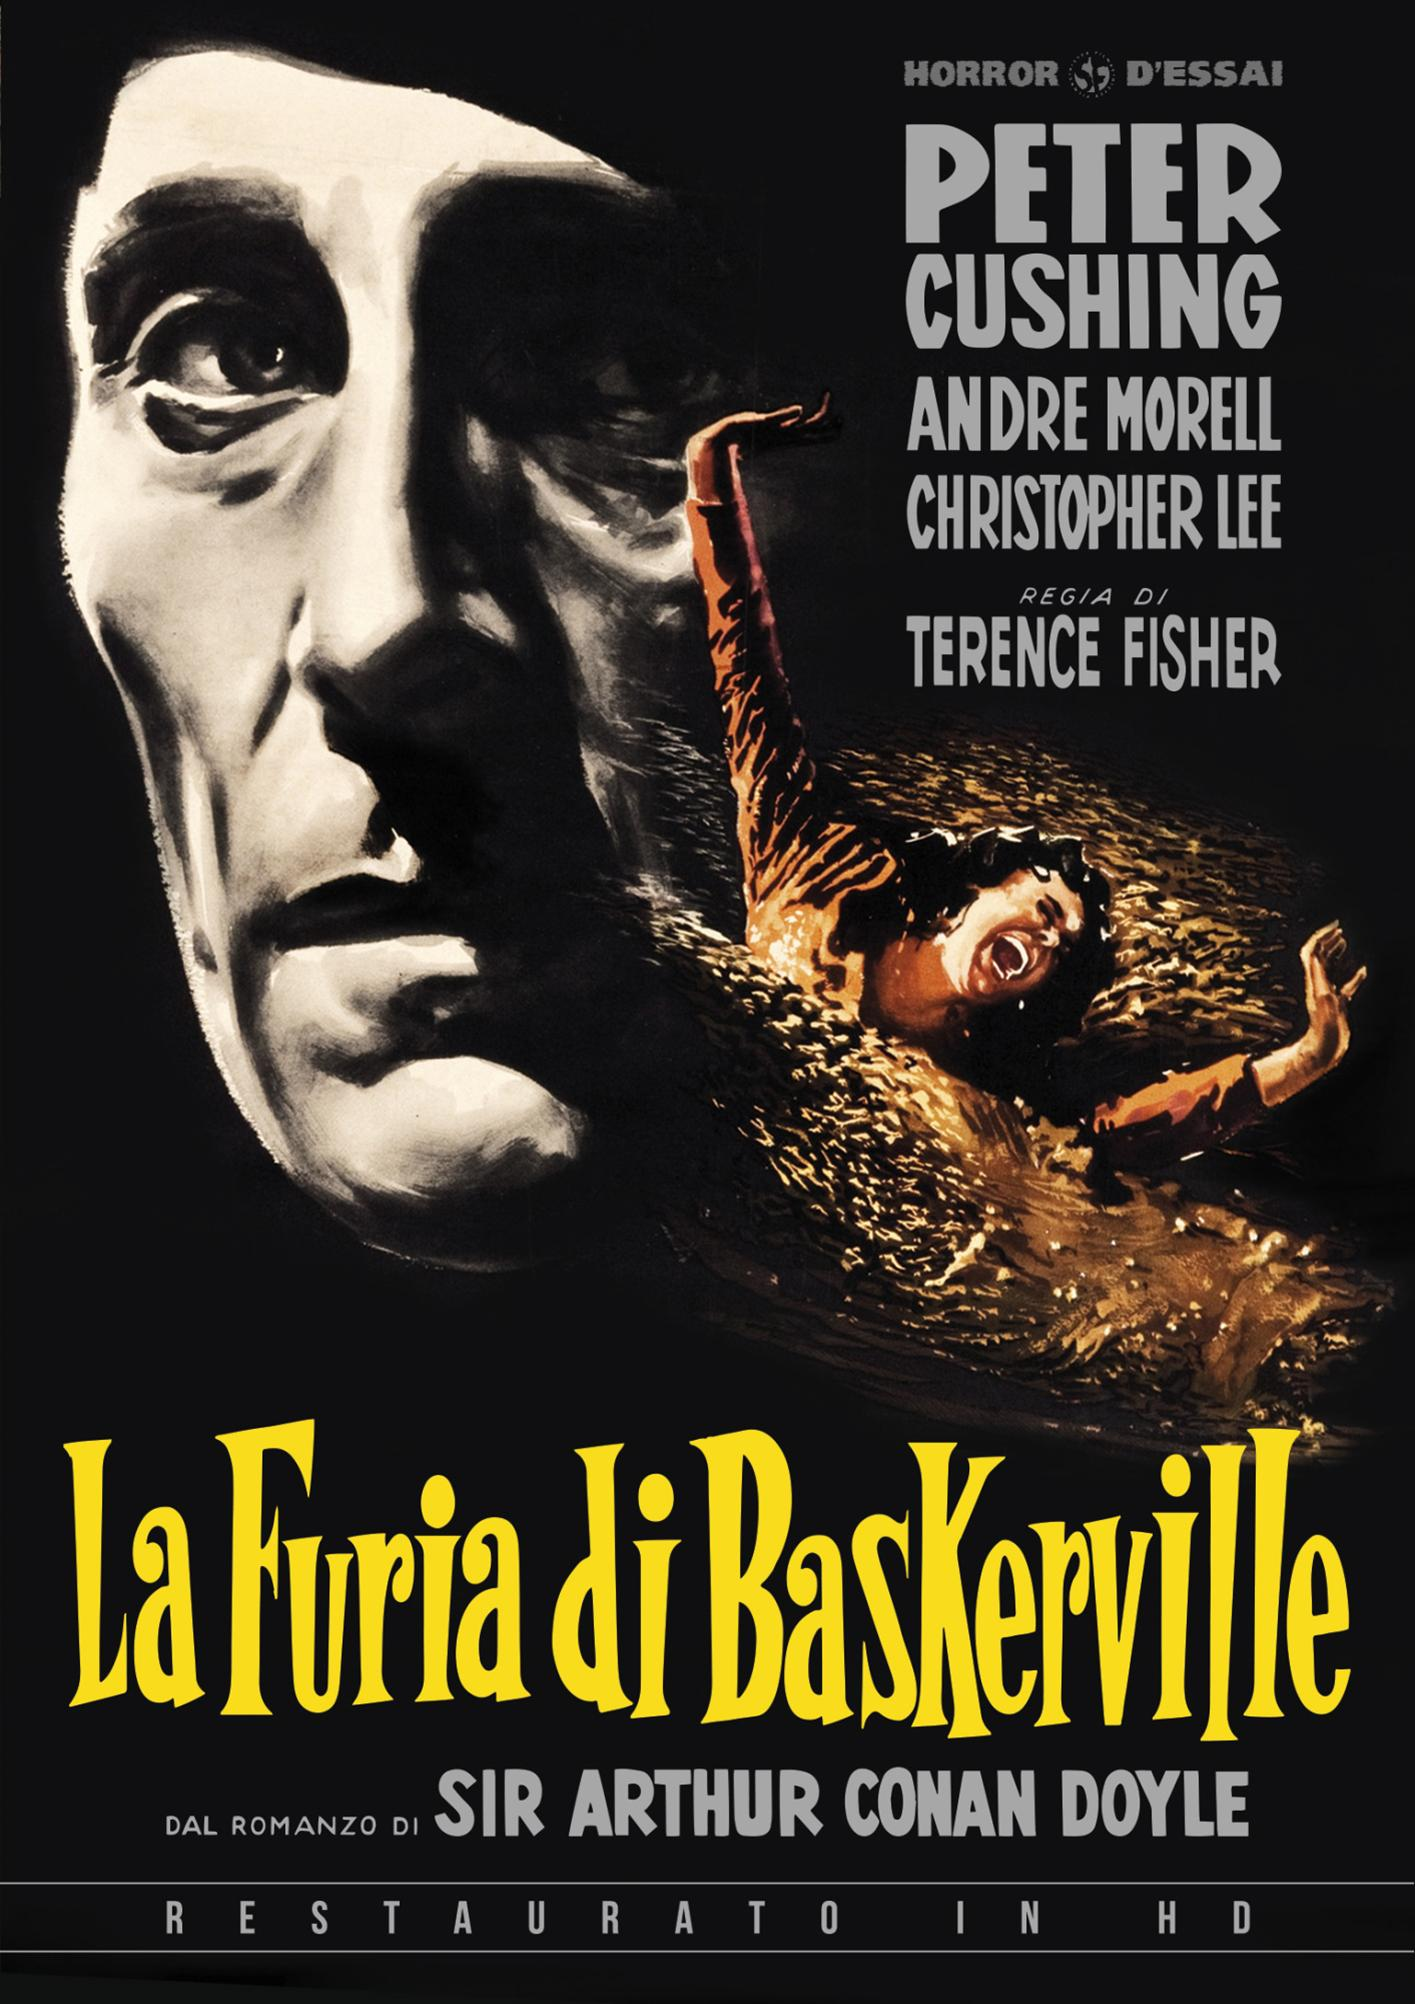 LA FURIA DEI BASKERVILLE (RESTAURATO IN HD) (DVD)